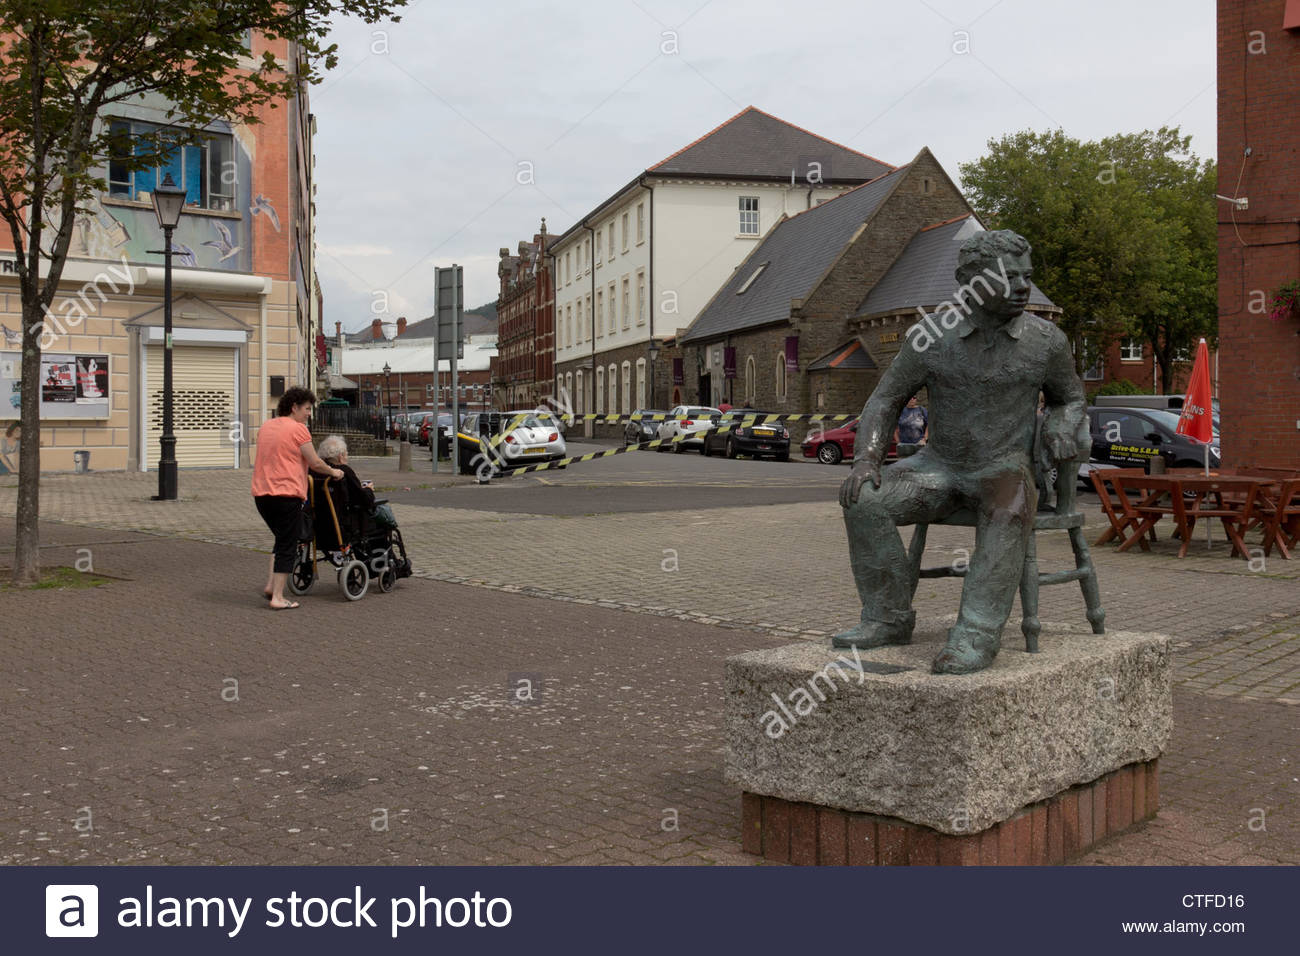 Lady pushes a woman in wheelchair past the John Doubleday statue of Dylan Thomas, Swansea. - Stock Image